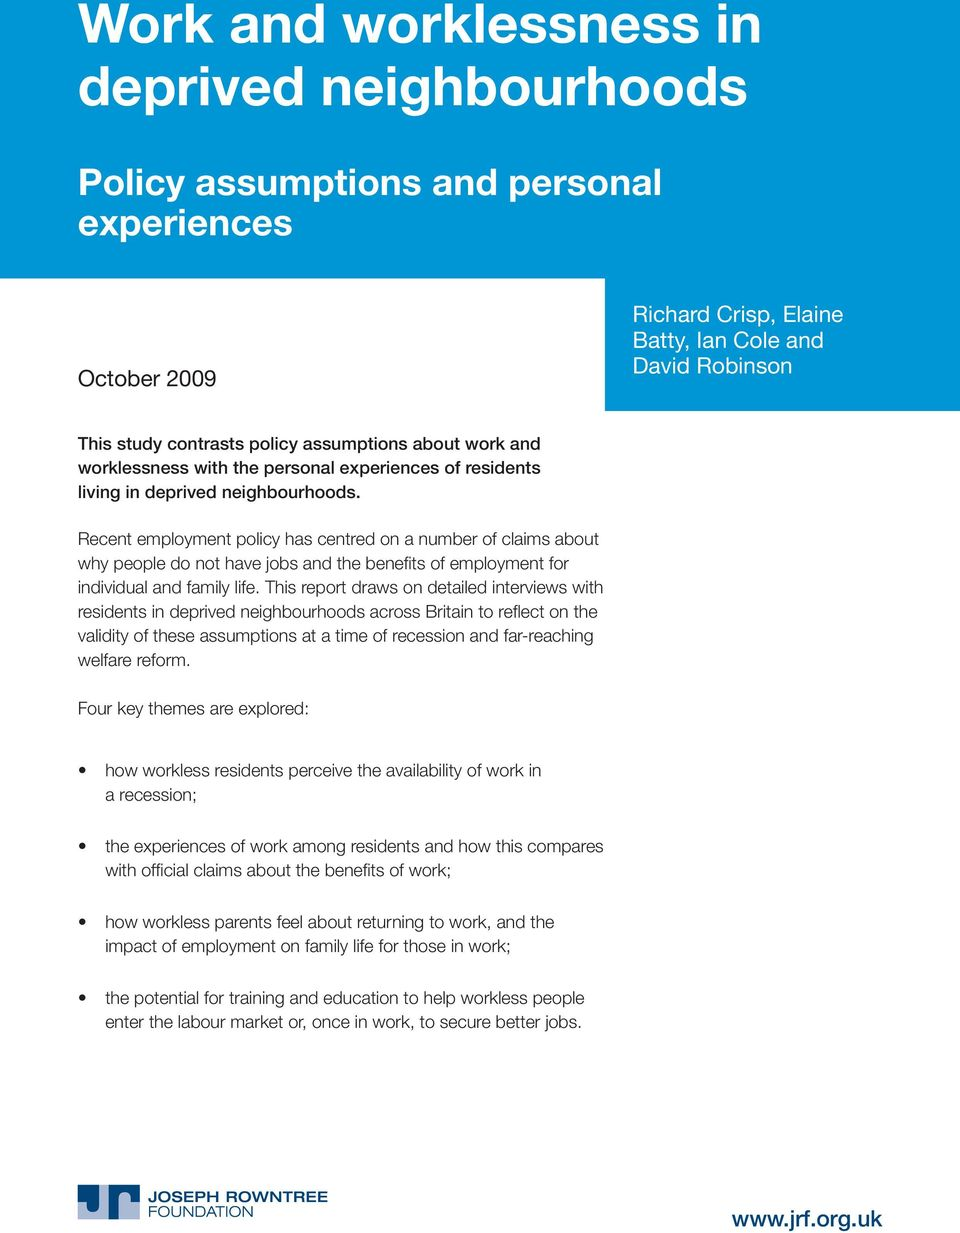 Recent employment policy has centred on a number of claims about why people do not have jobs and the benefits of employment for individual and family life.